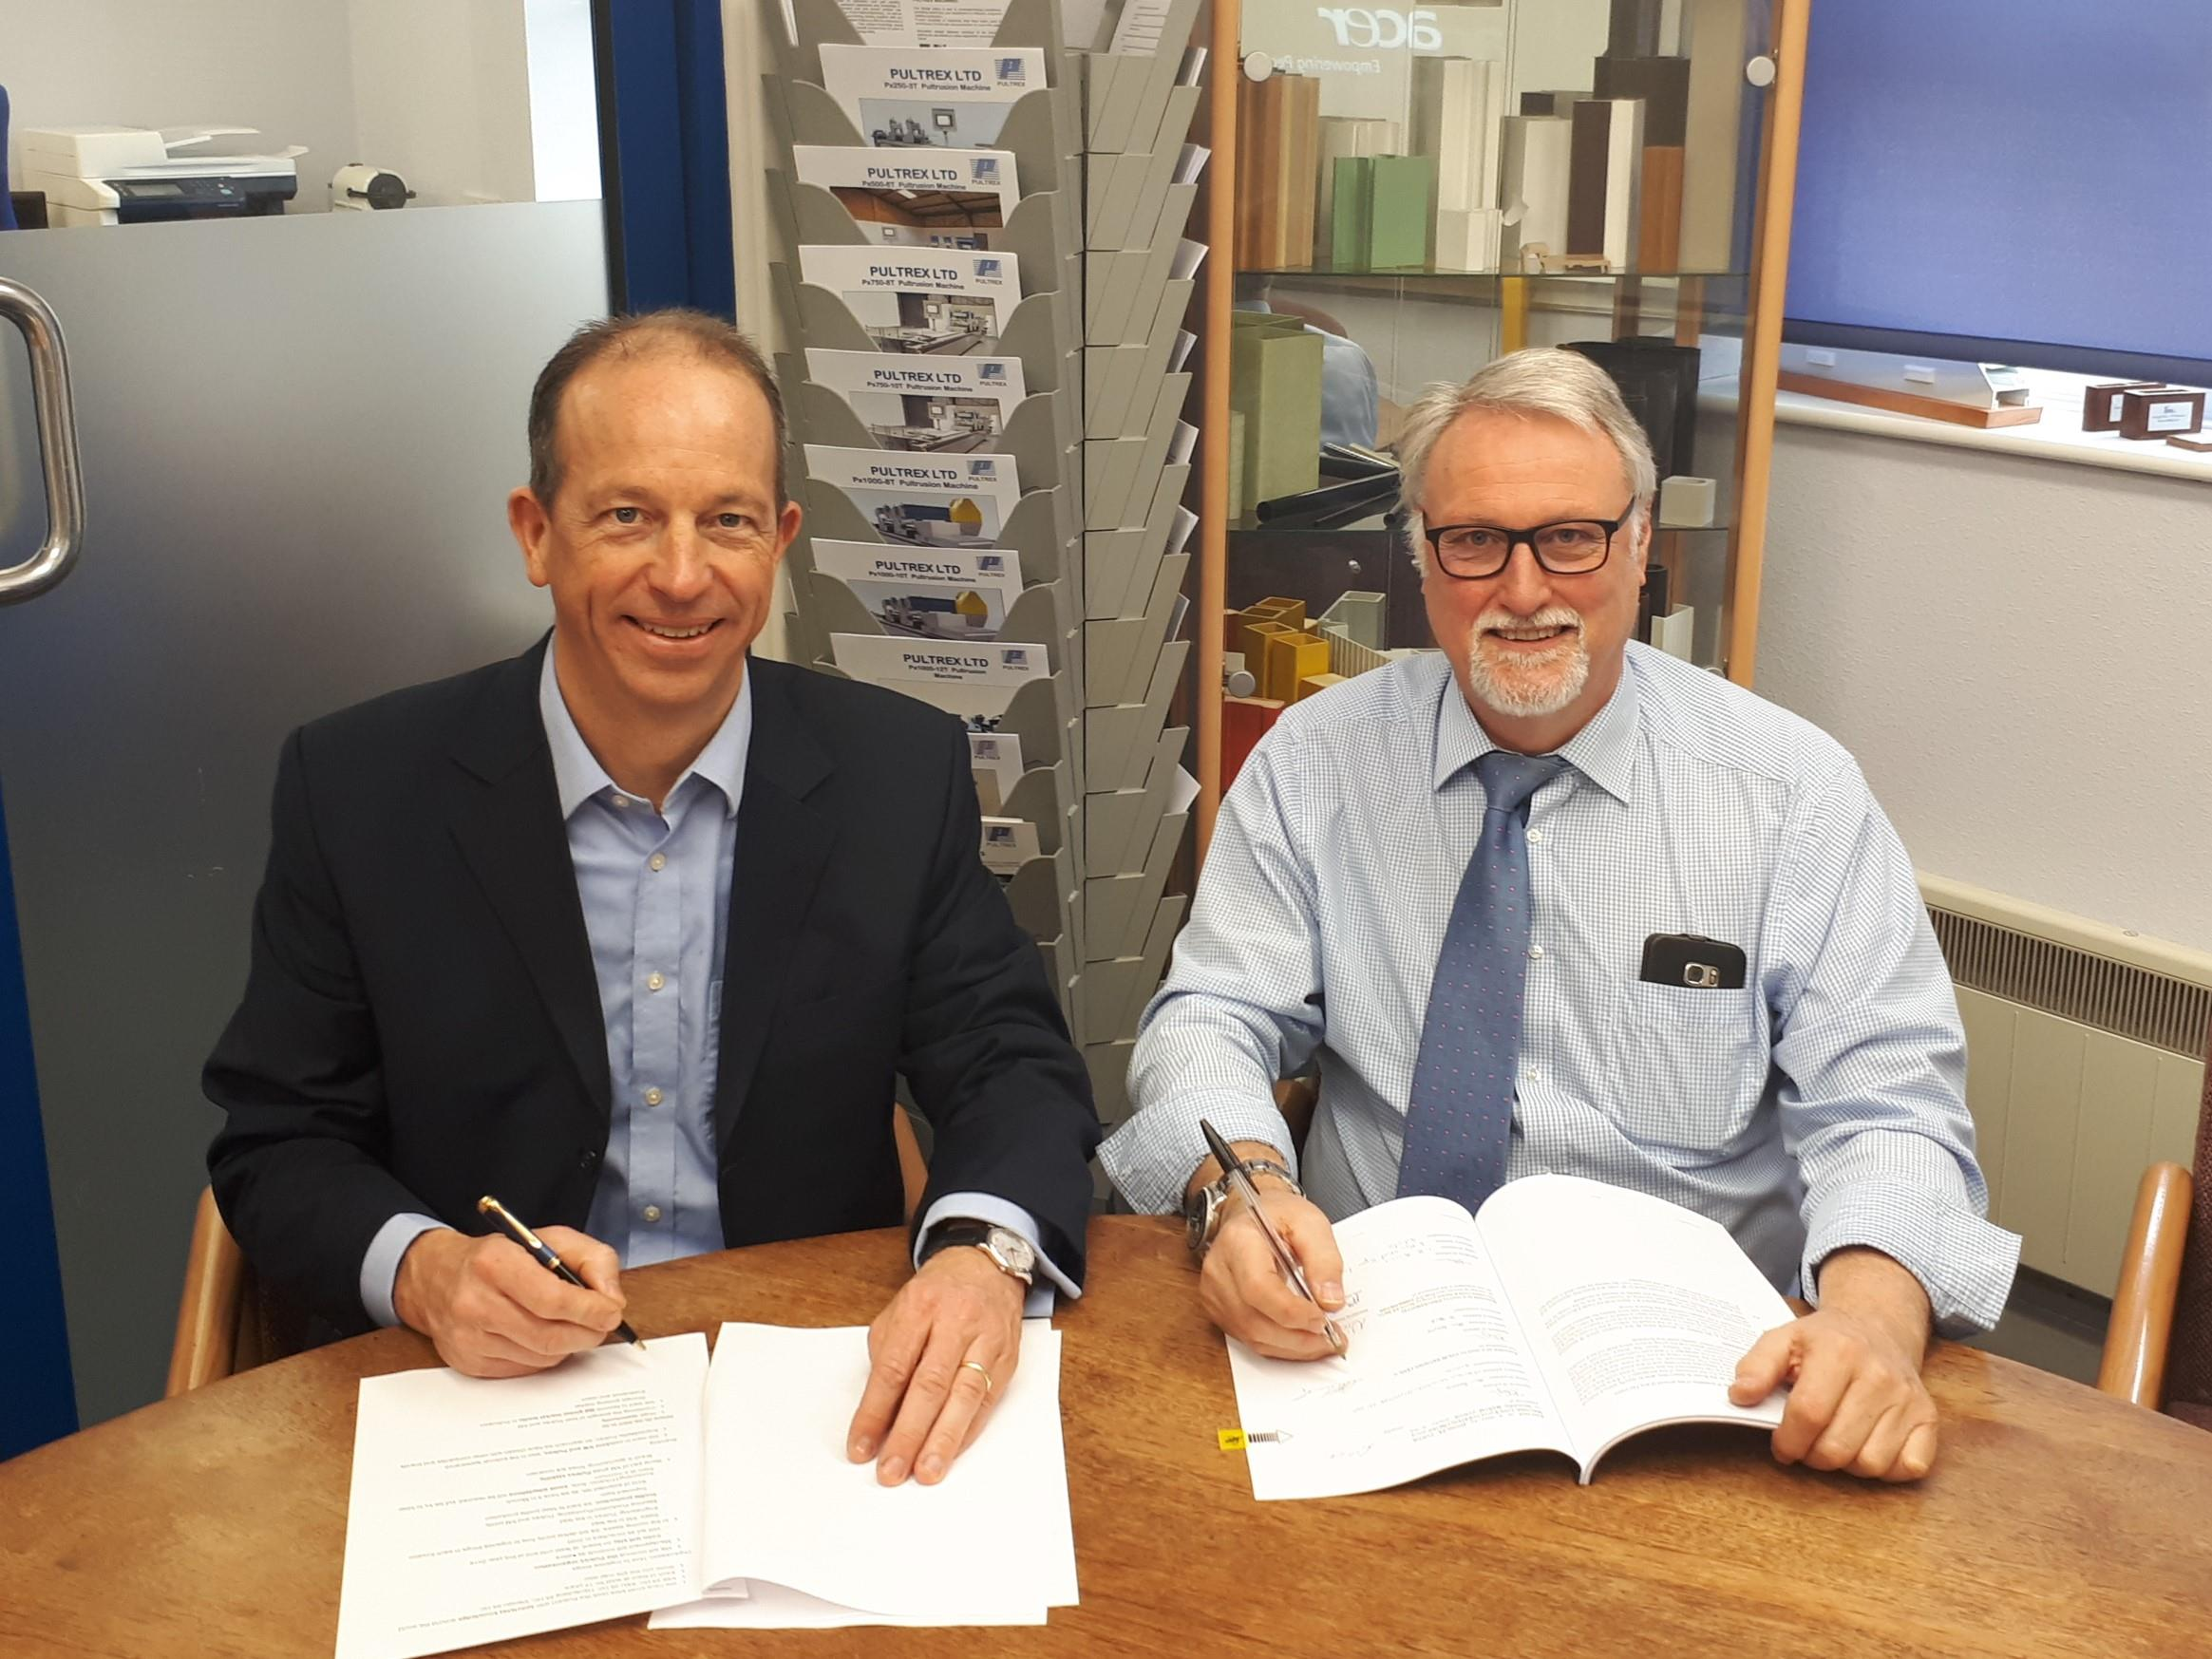 At the signing of the contract (f. l. t. r.): Nicolas Beyl, President of the Reaction Process Machinery segment at KraussMaffei, and Colin Leek, Managing Director at Pultrex (Source: KraussMaffei)